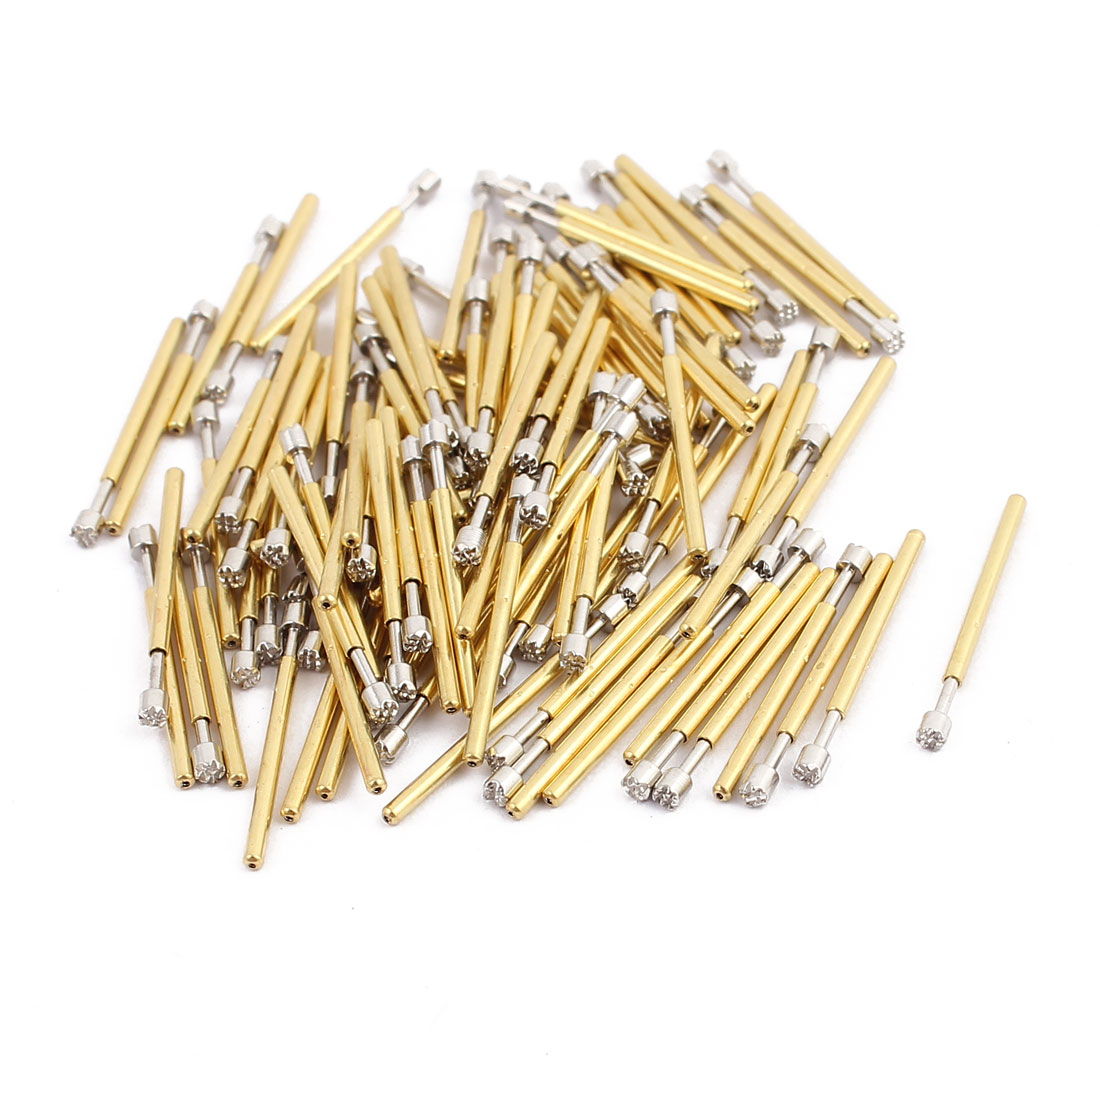 100pcs P75-H3 1.0mm Dia 16.8mm Length Metal Spring Pressure Test Probe Needle